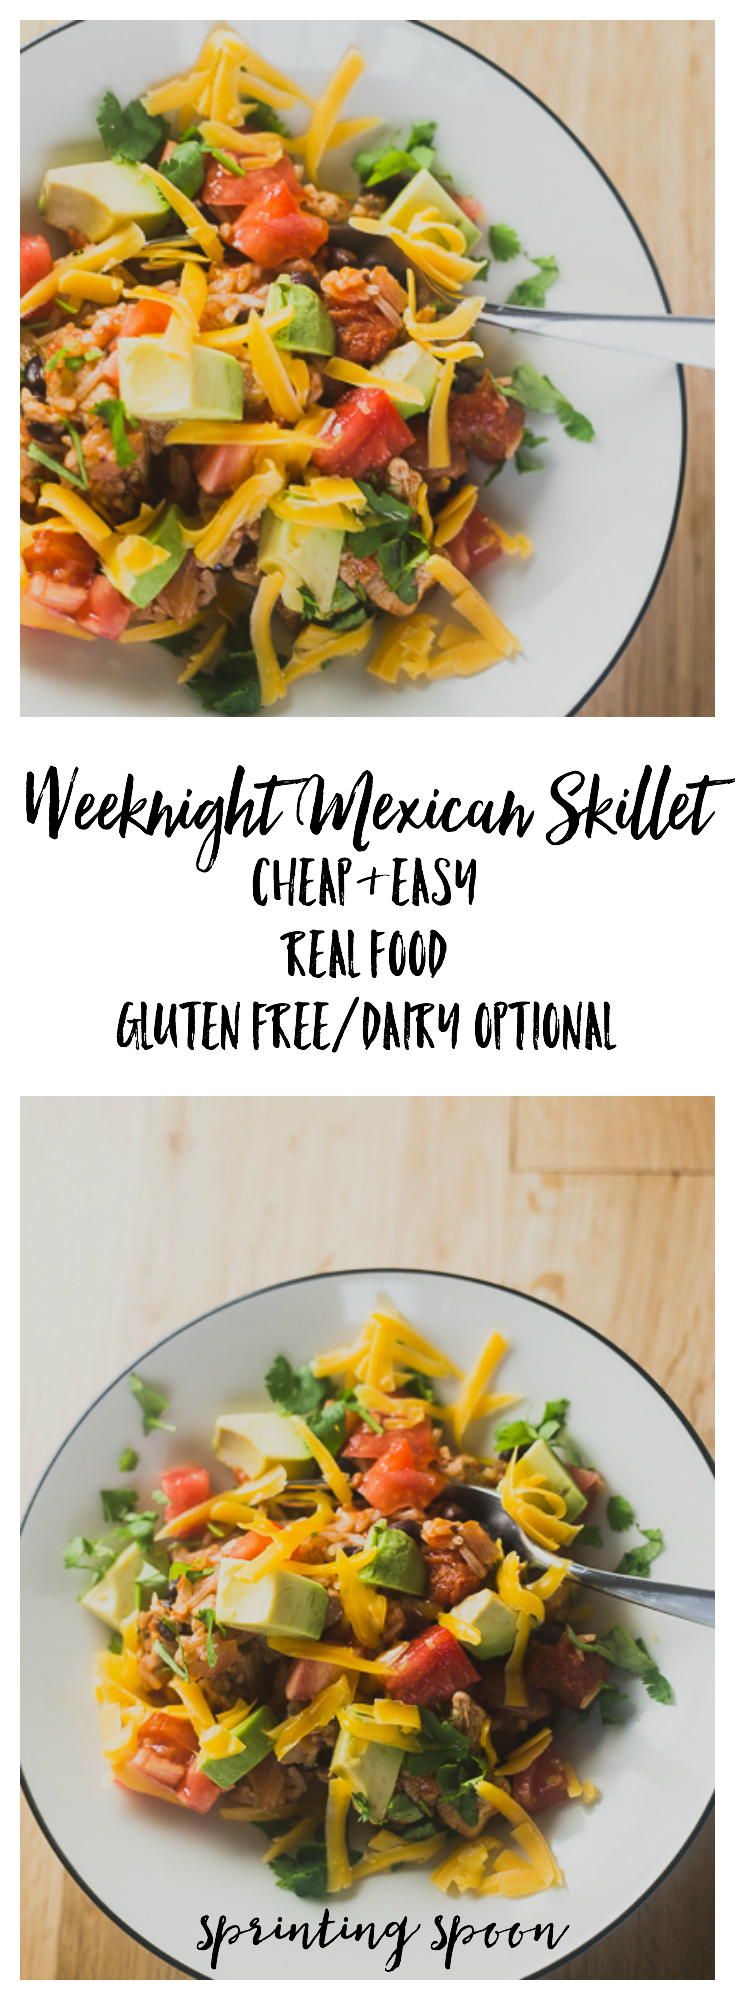 Easy Weeknight Mexican Skillet :: Sprinting Spoon Real Food Fast. Budget-friendly. Gluten free/dairy optional.